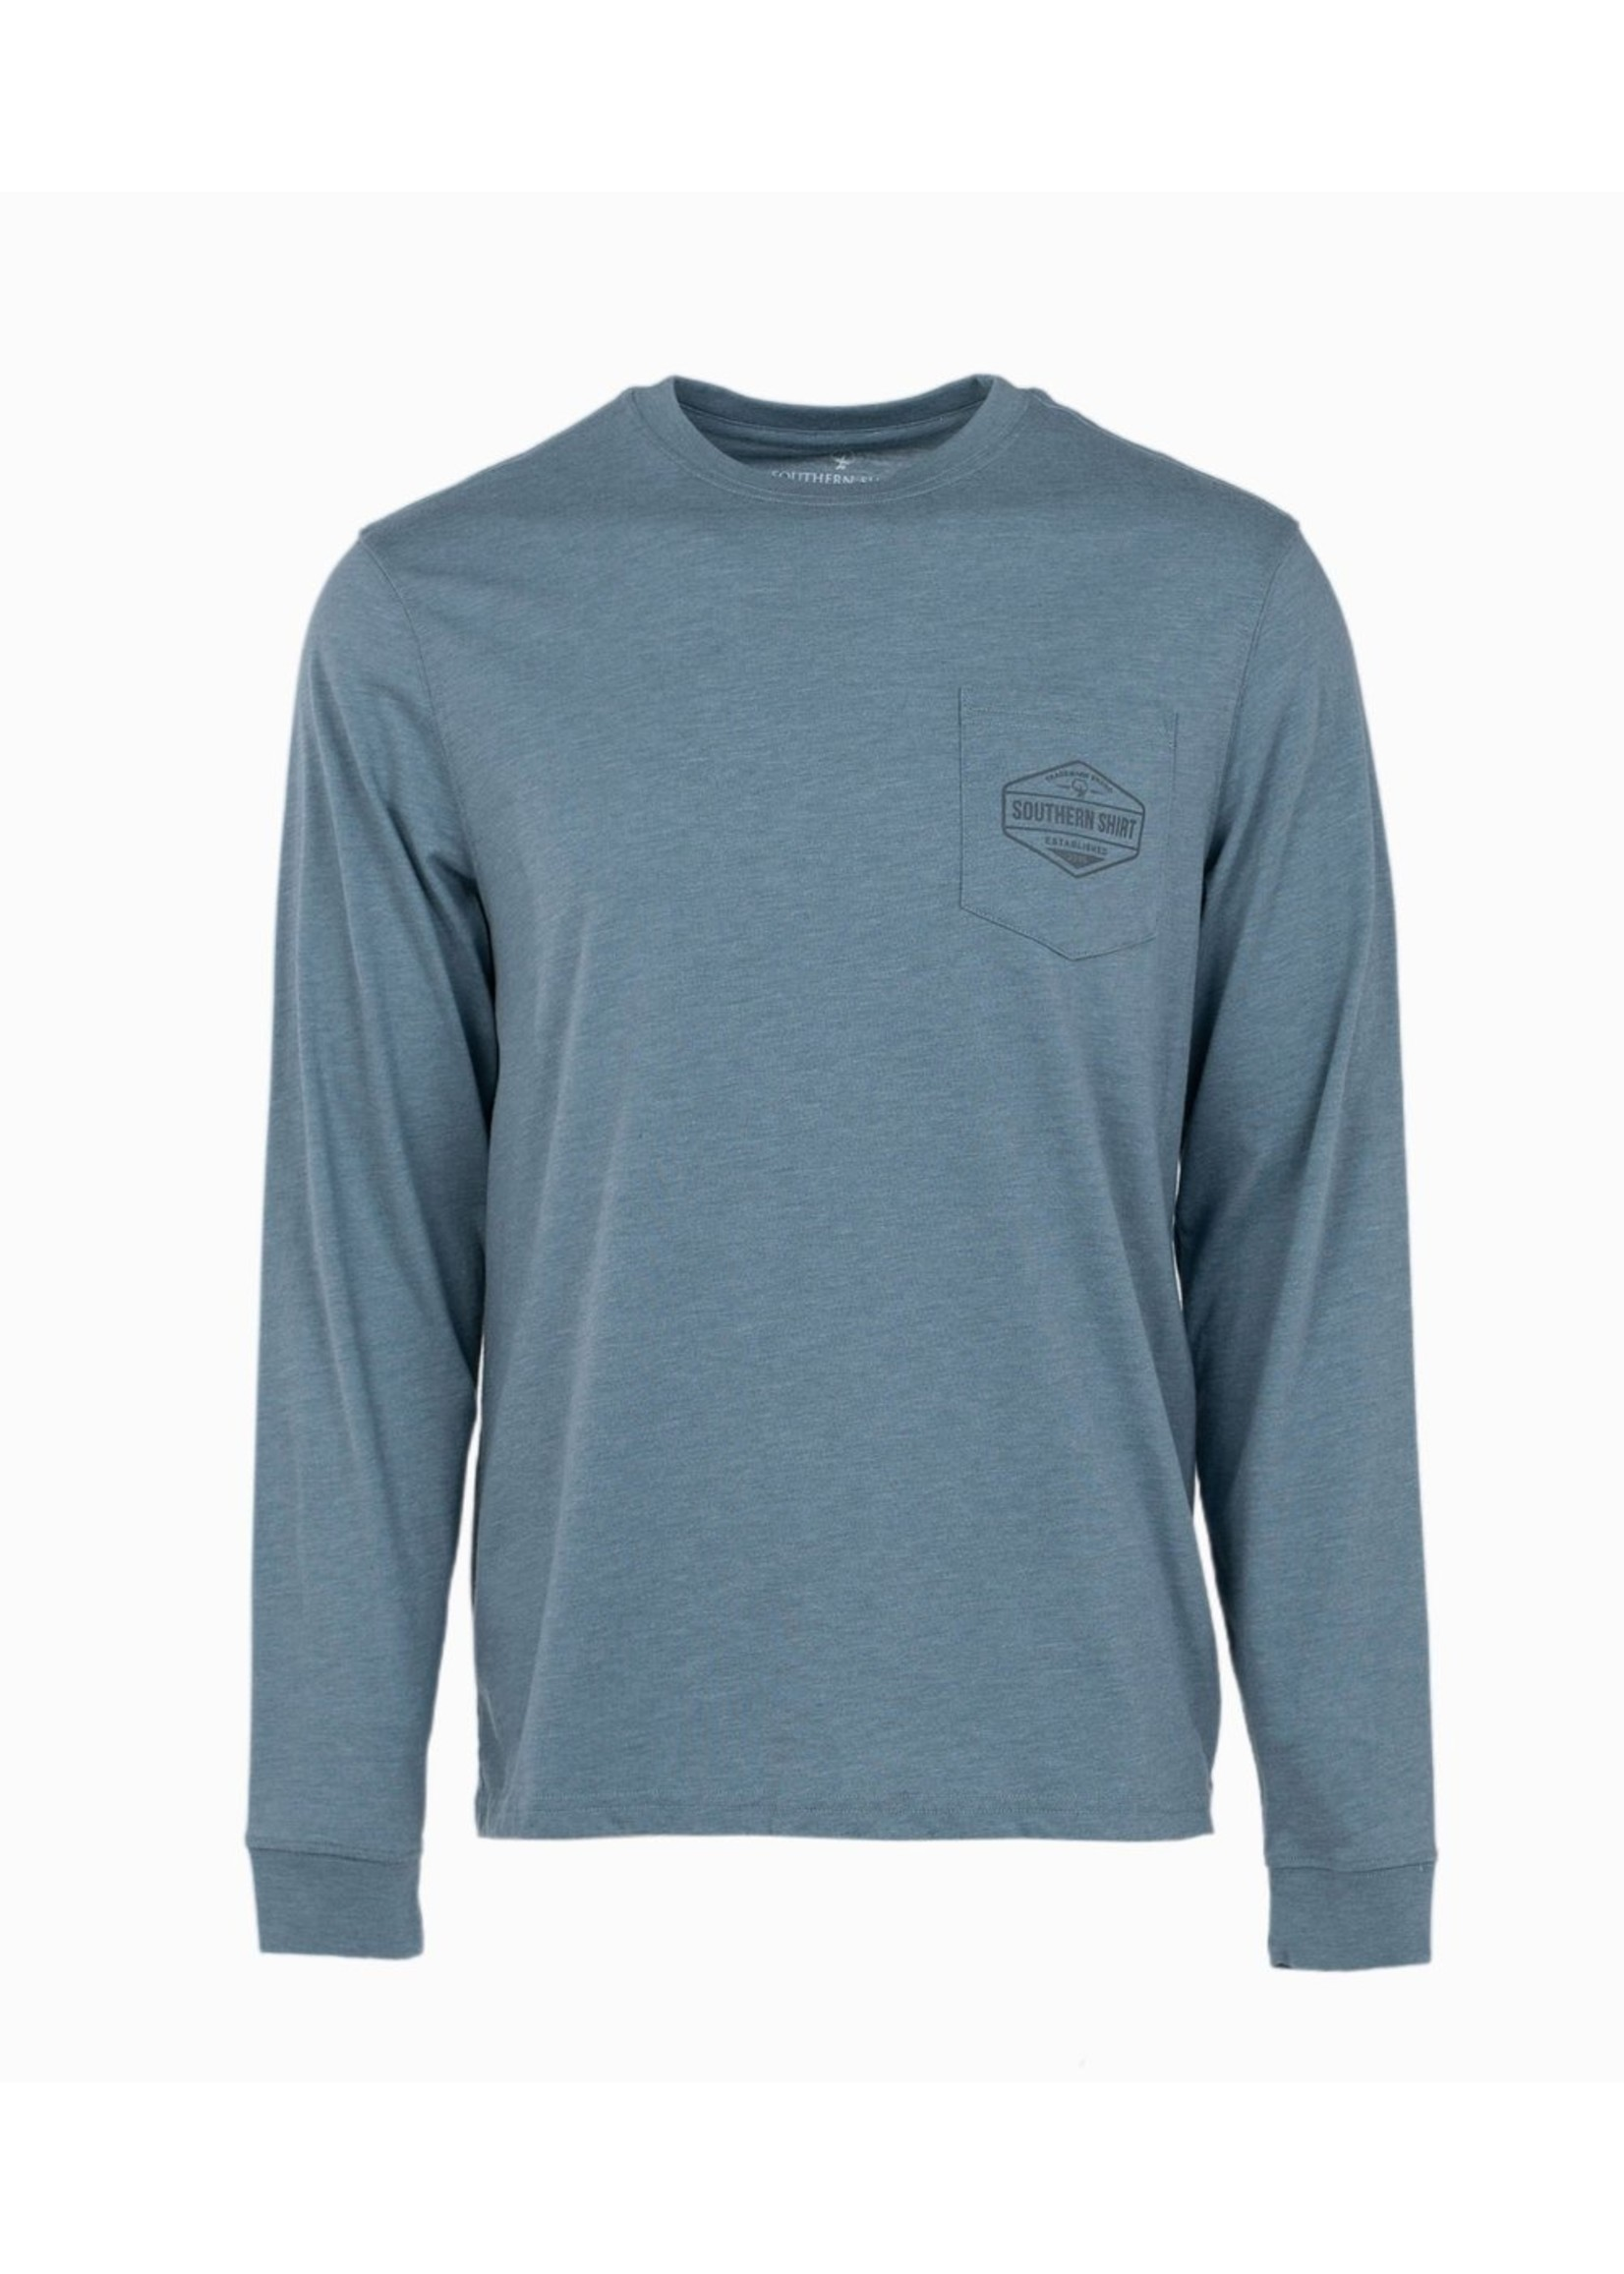 Southern Shirt Wood Duck Stamp L/S Tee